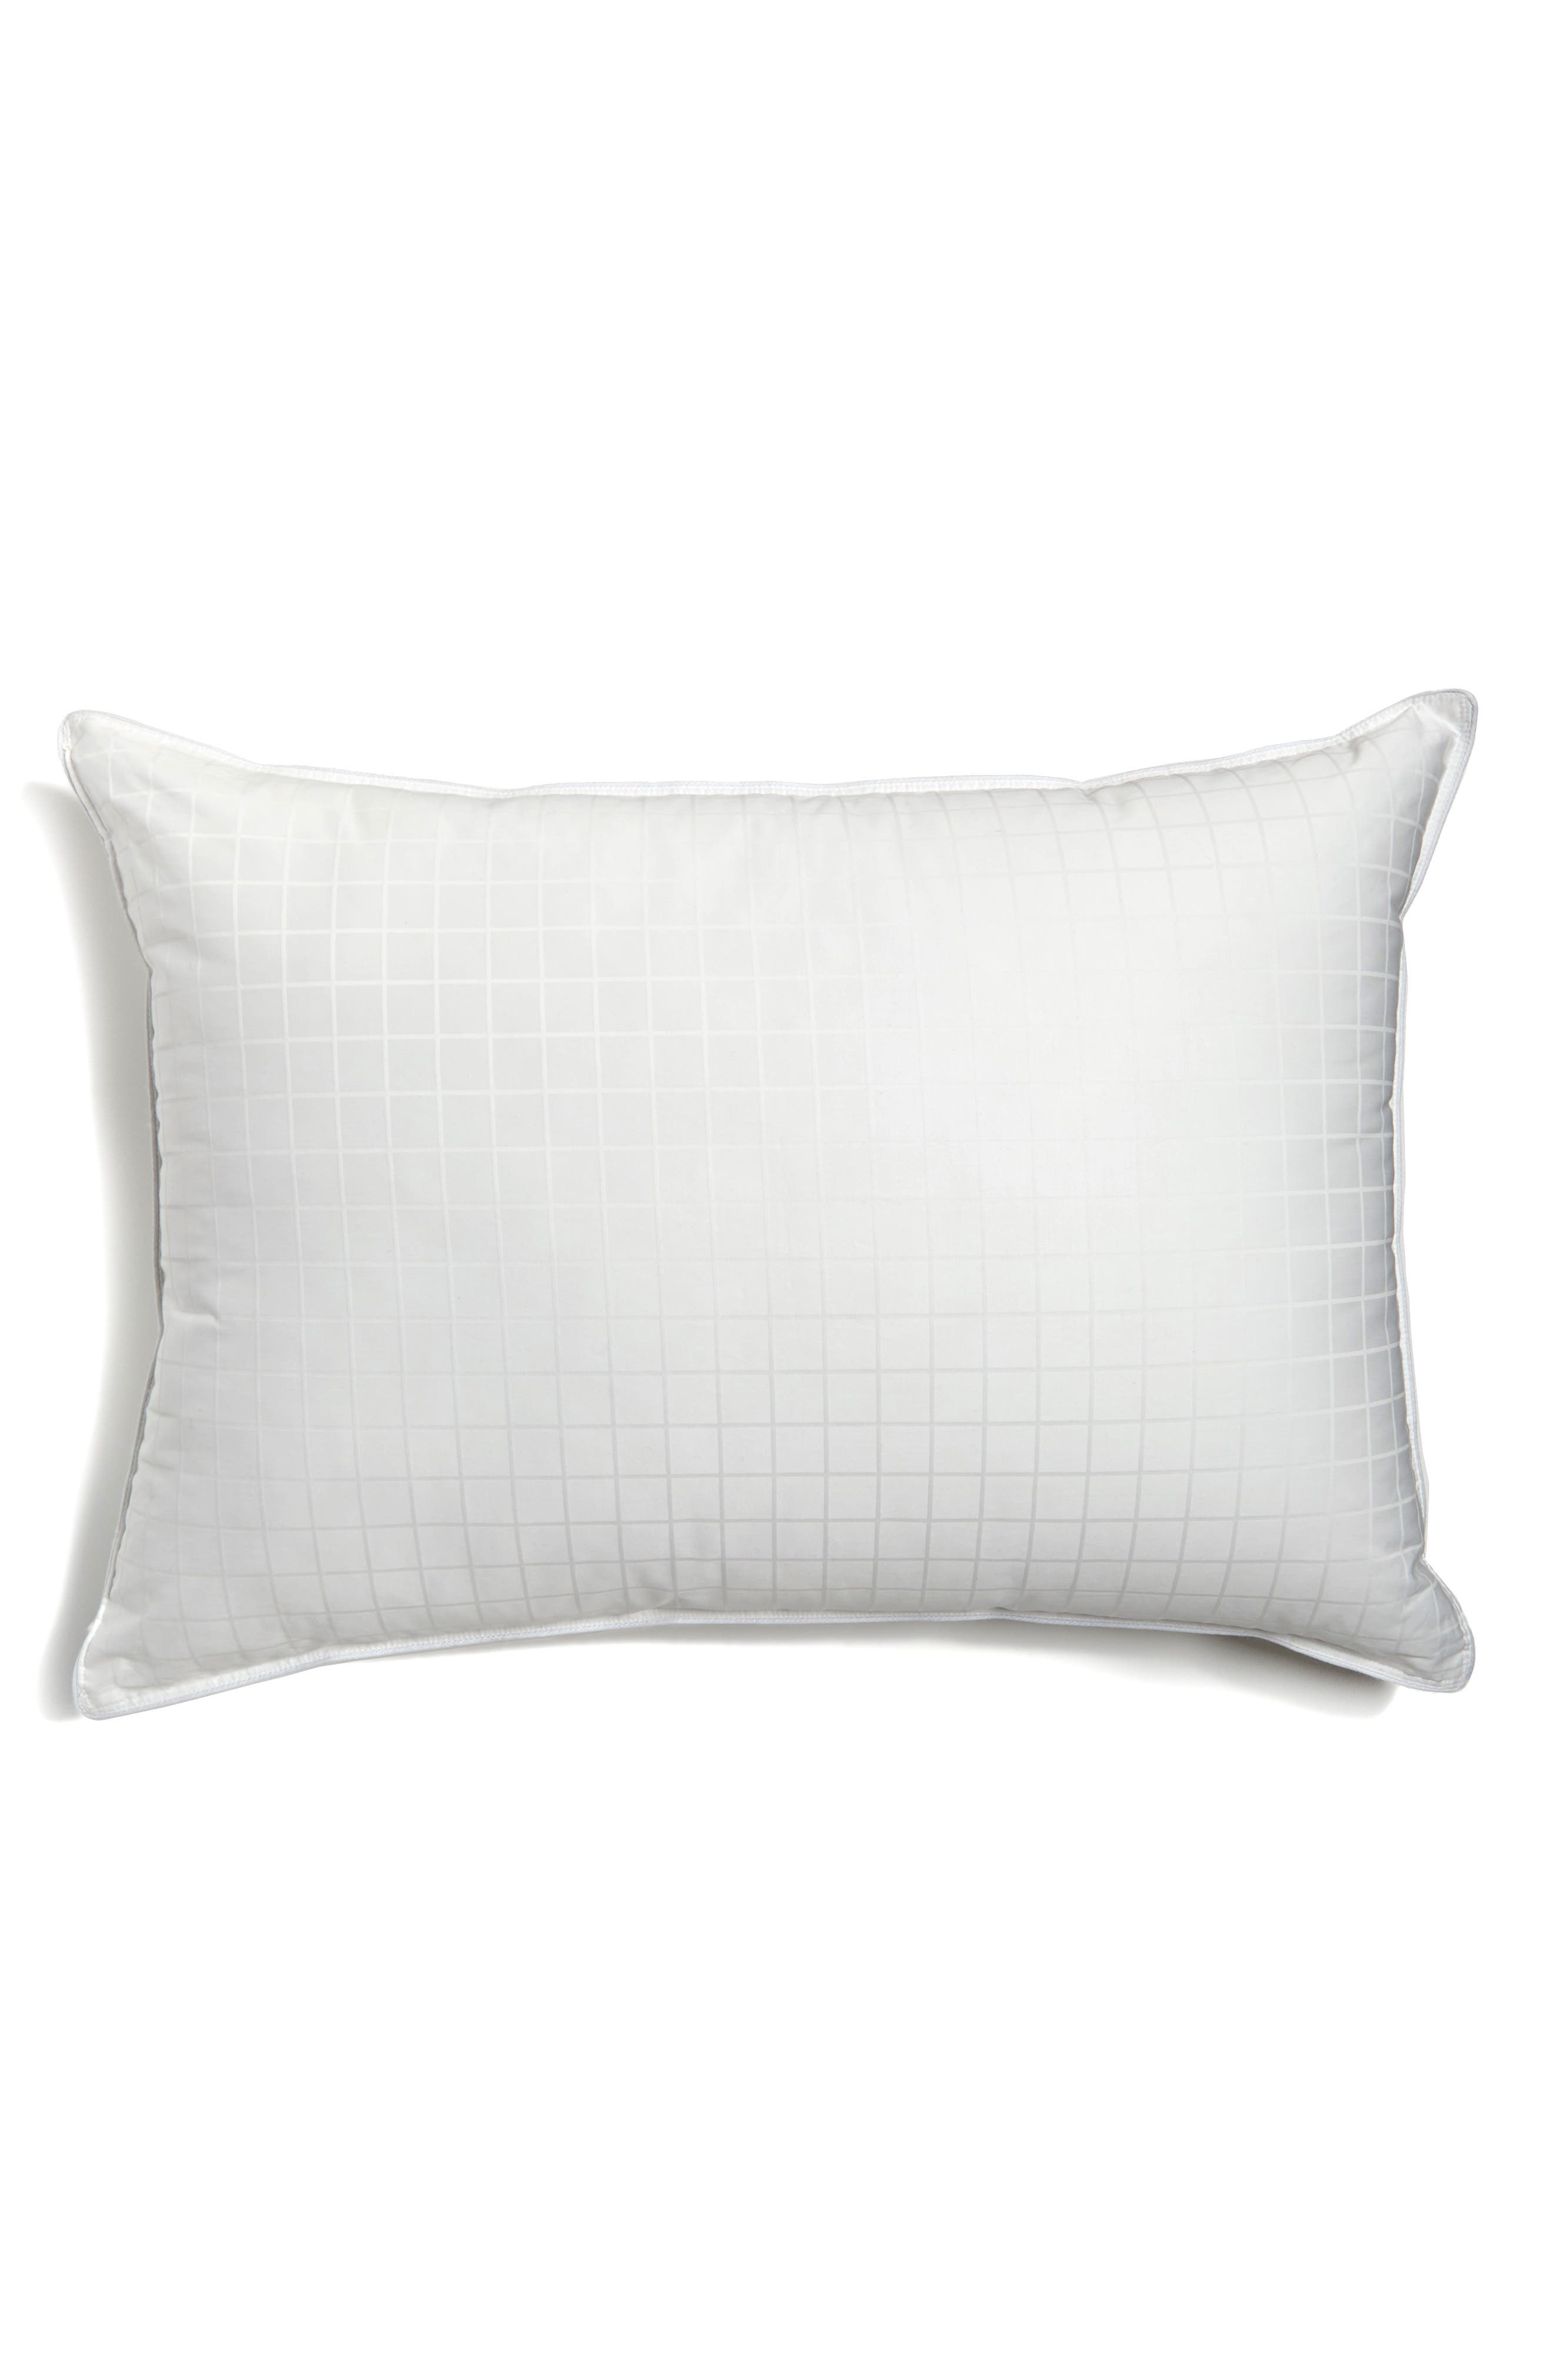 Luxe Down & Feather Pillow,                             Main thumbnail 1, color,                             White